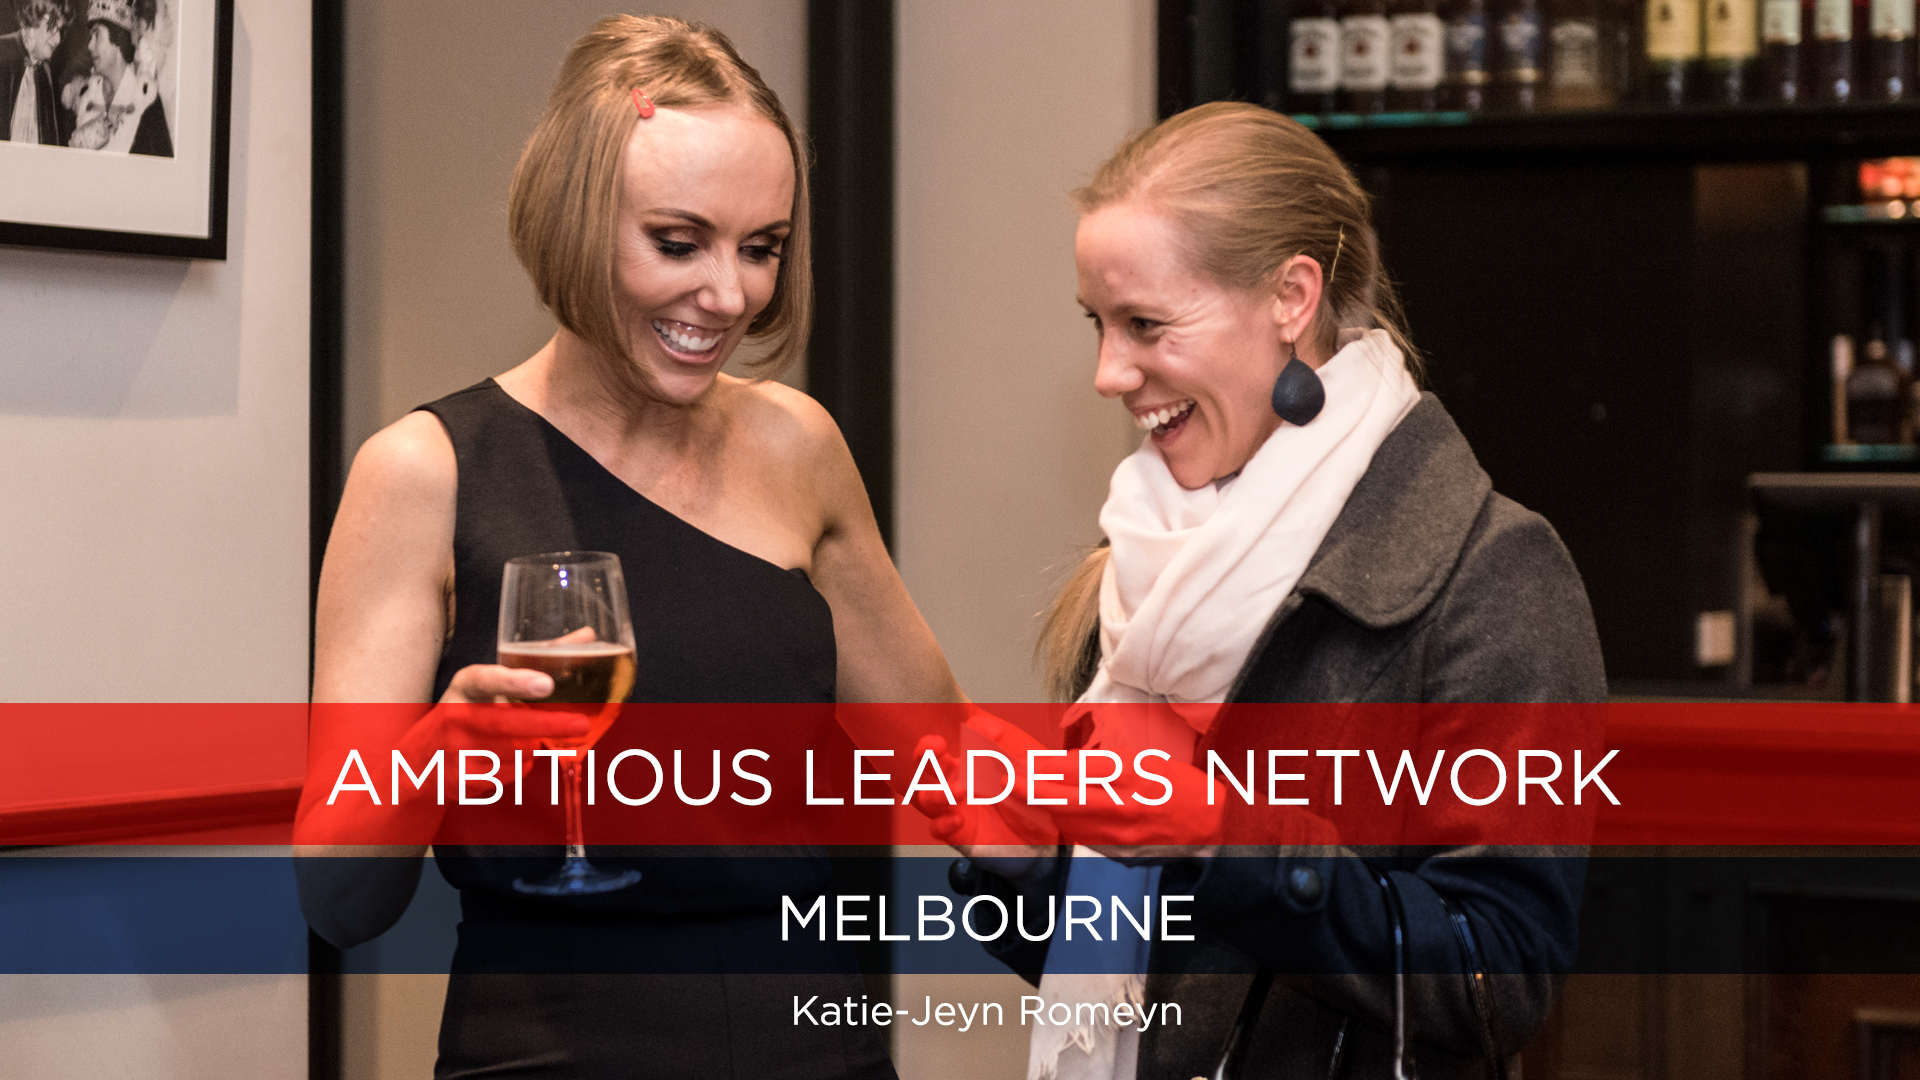 Ambitious Leaders Network Melbourne